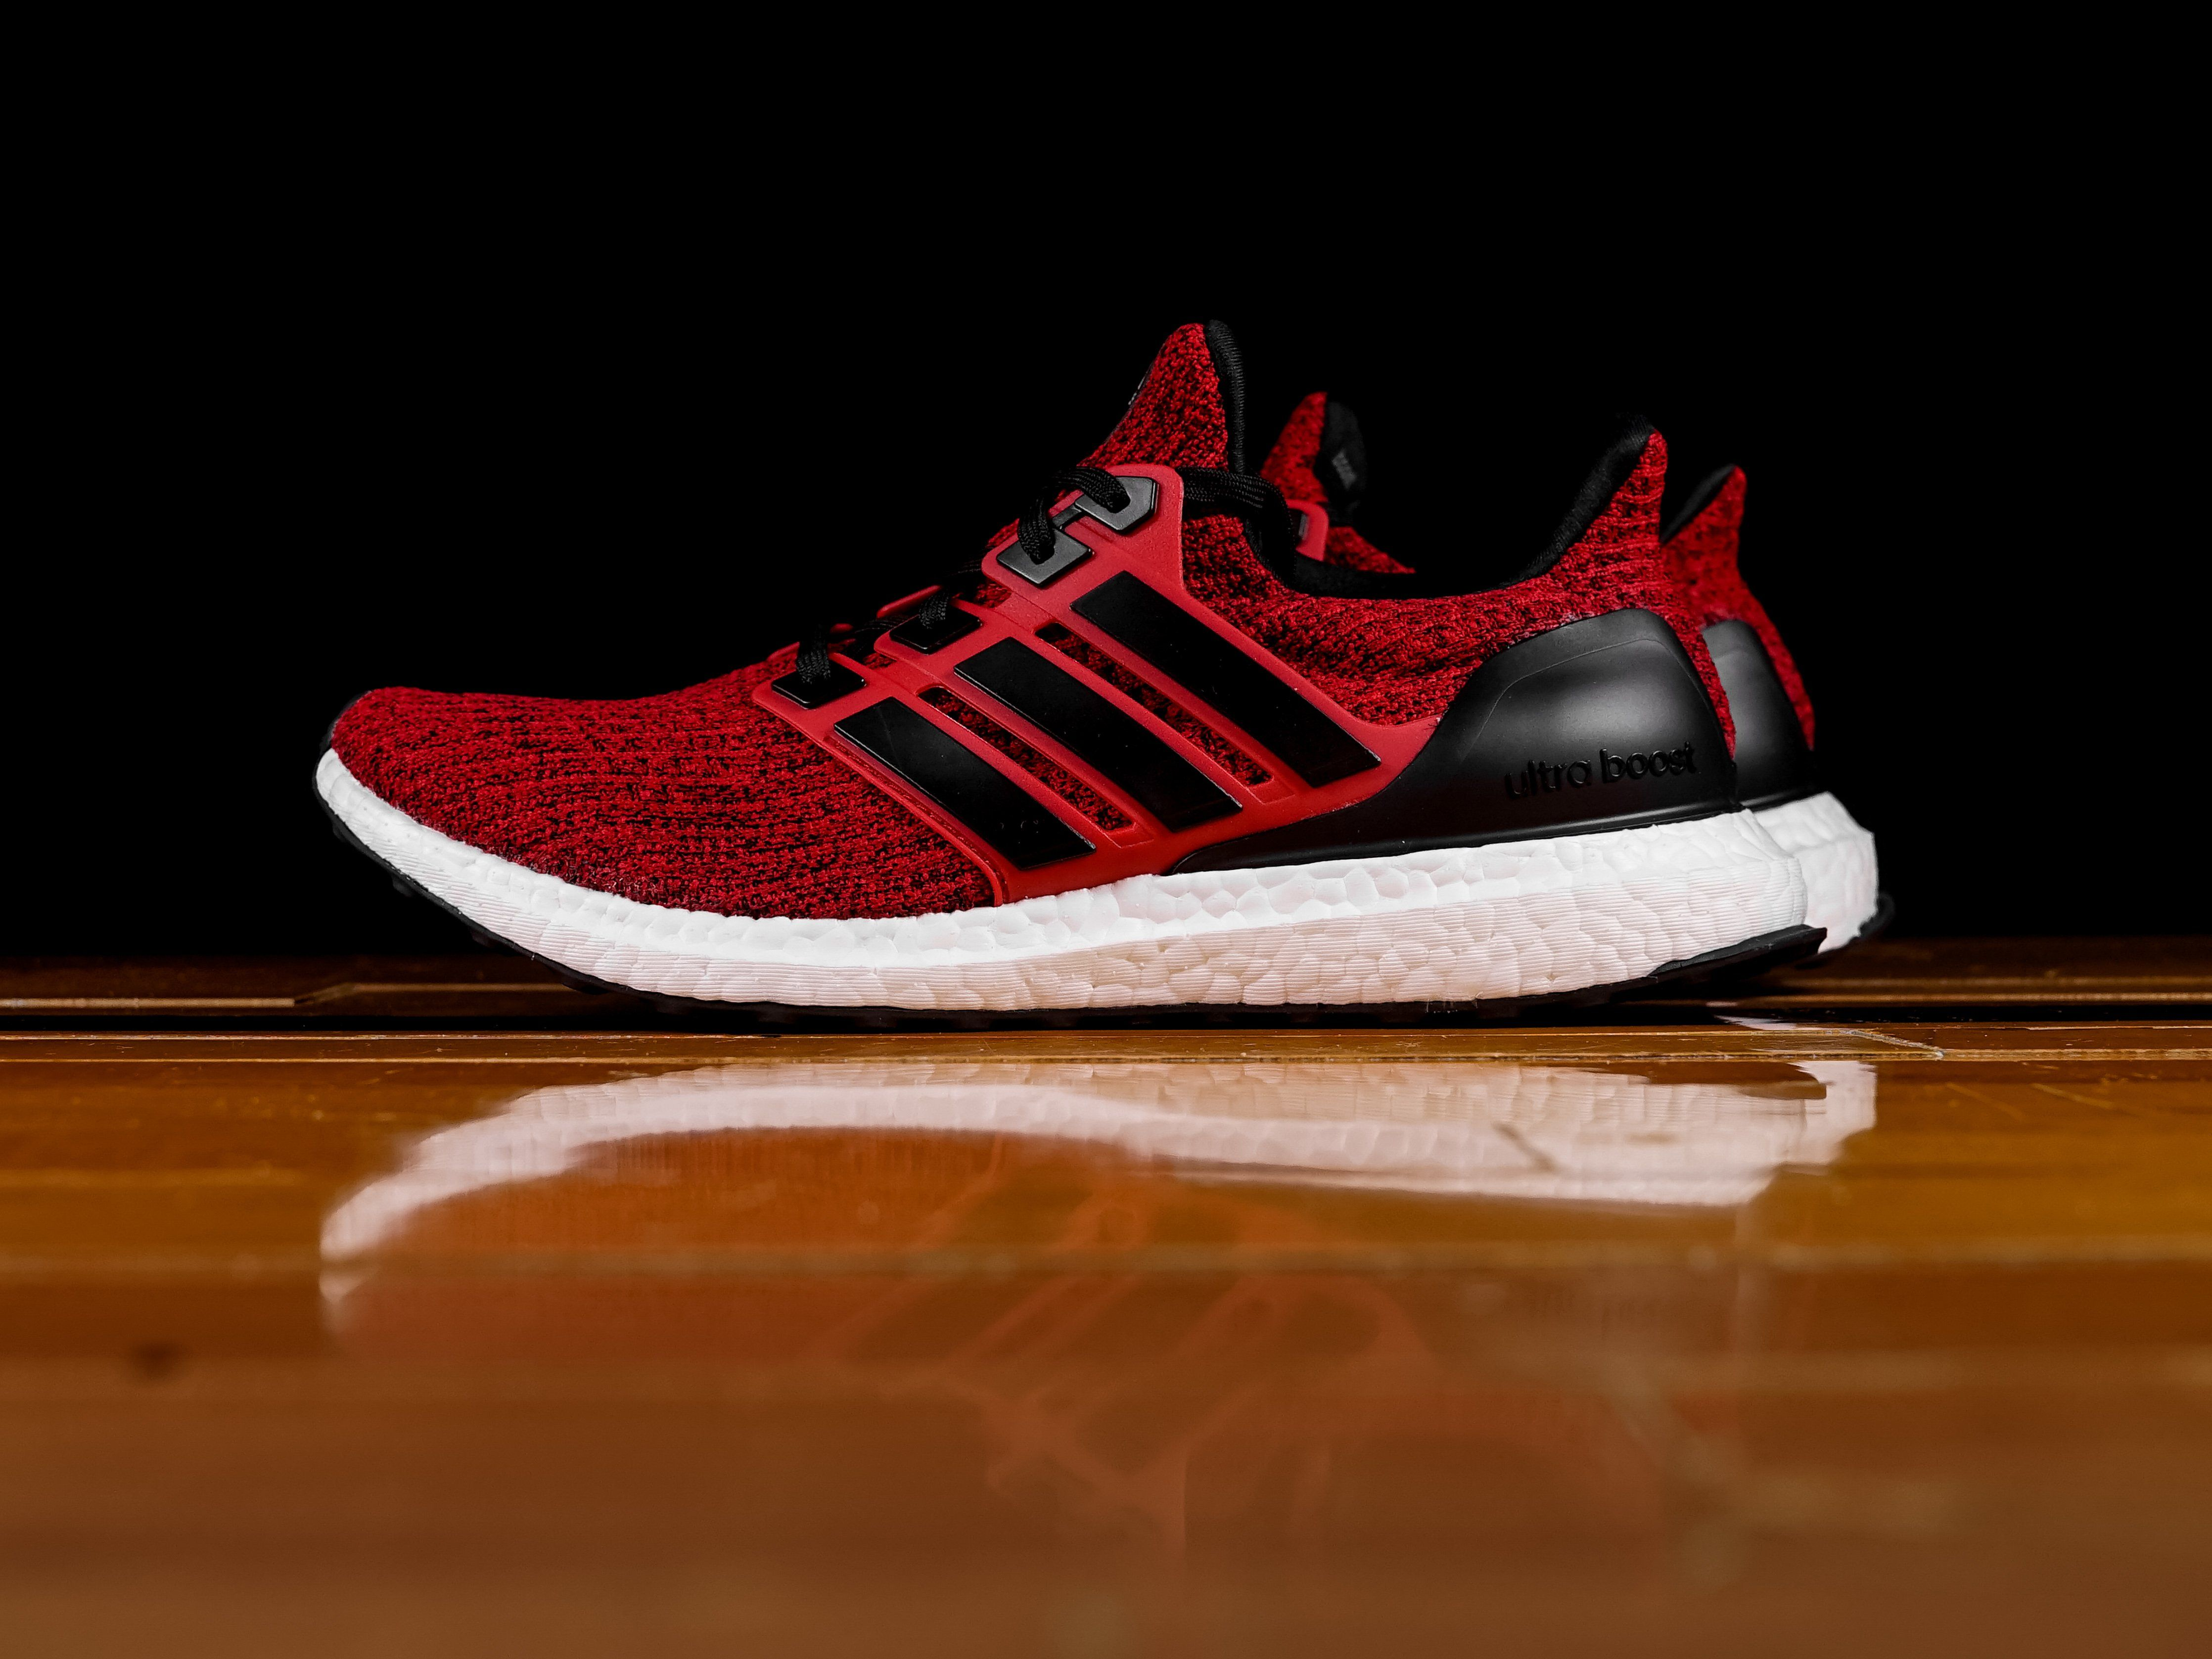 Men's Adidas Ultra Boost 4.0 'Power Red' [EE3703] | Kicks in